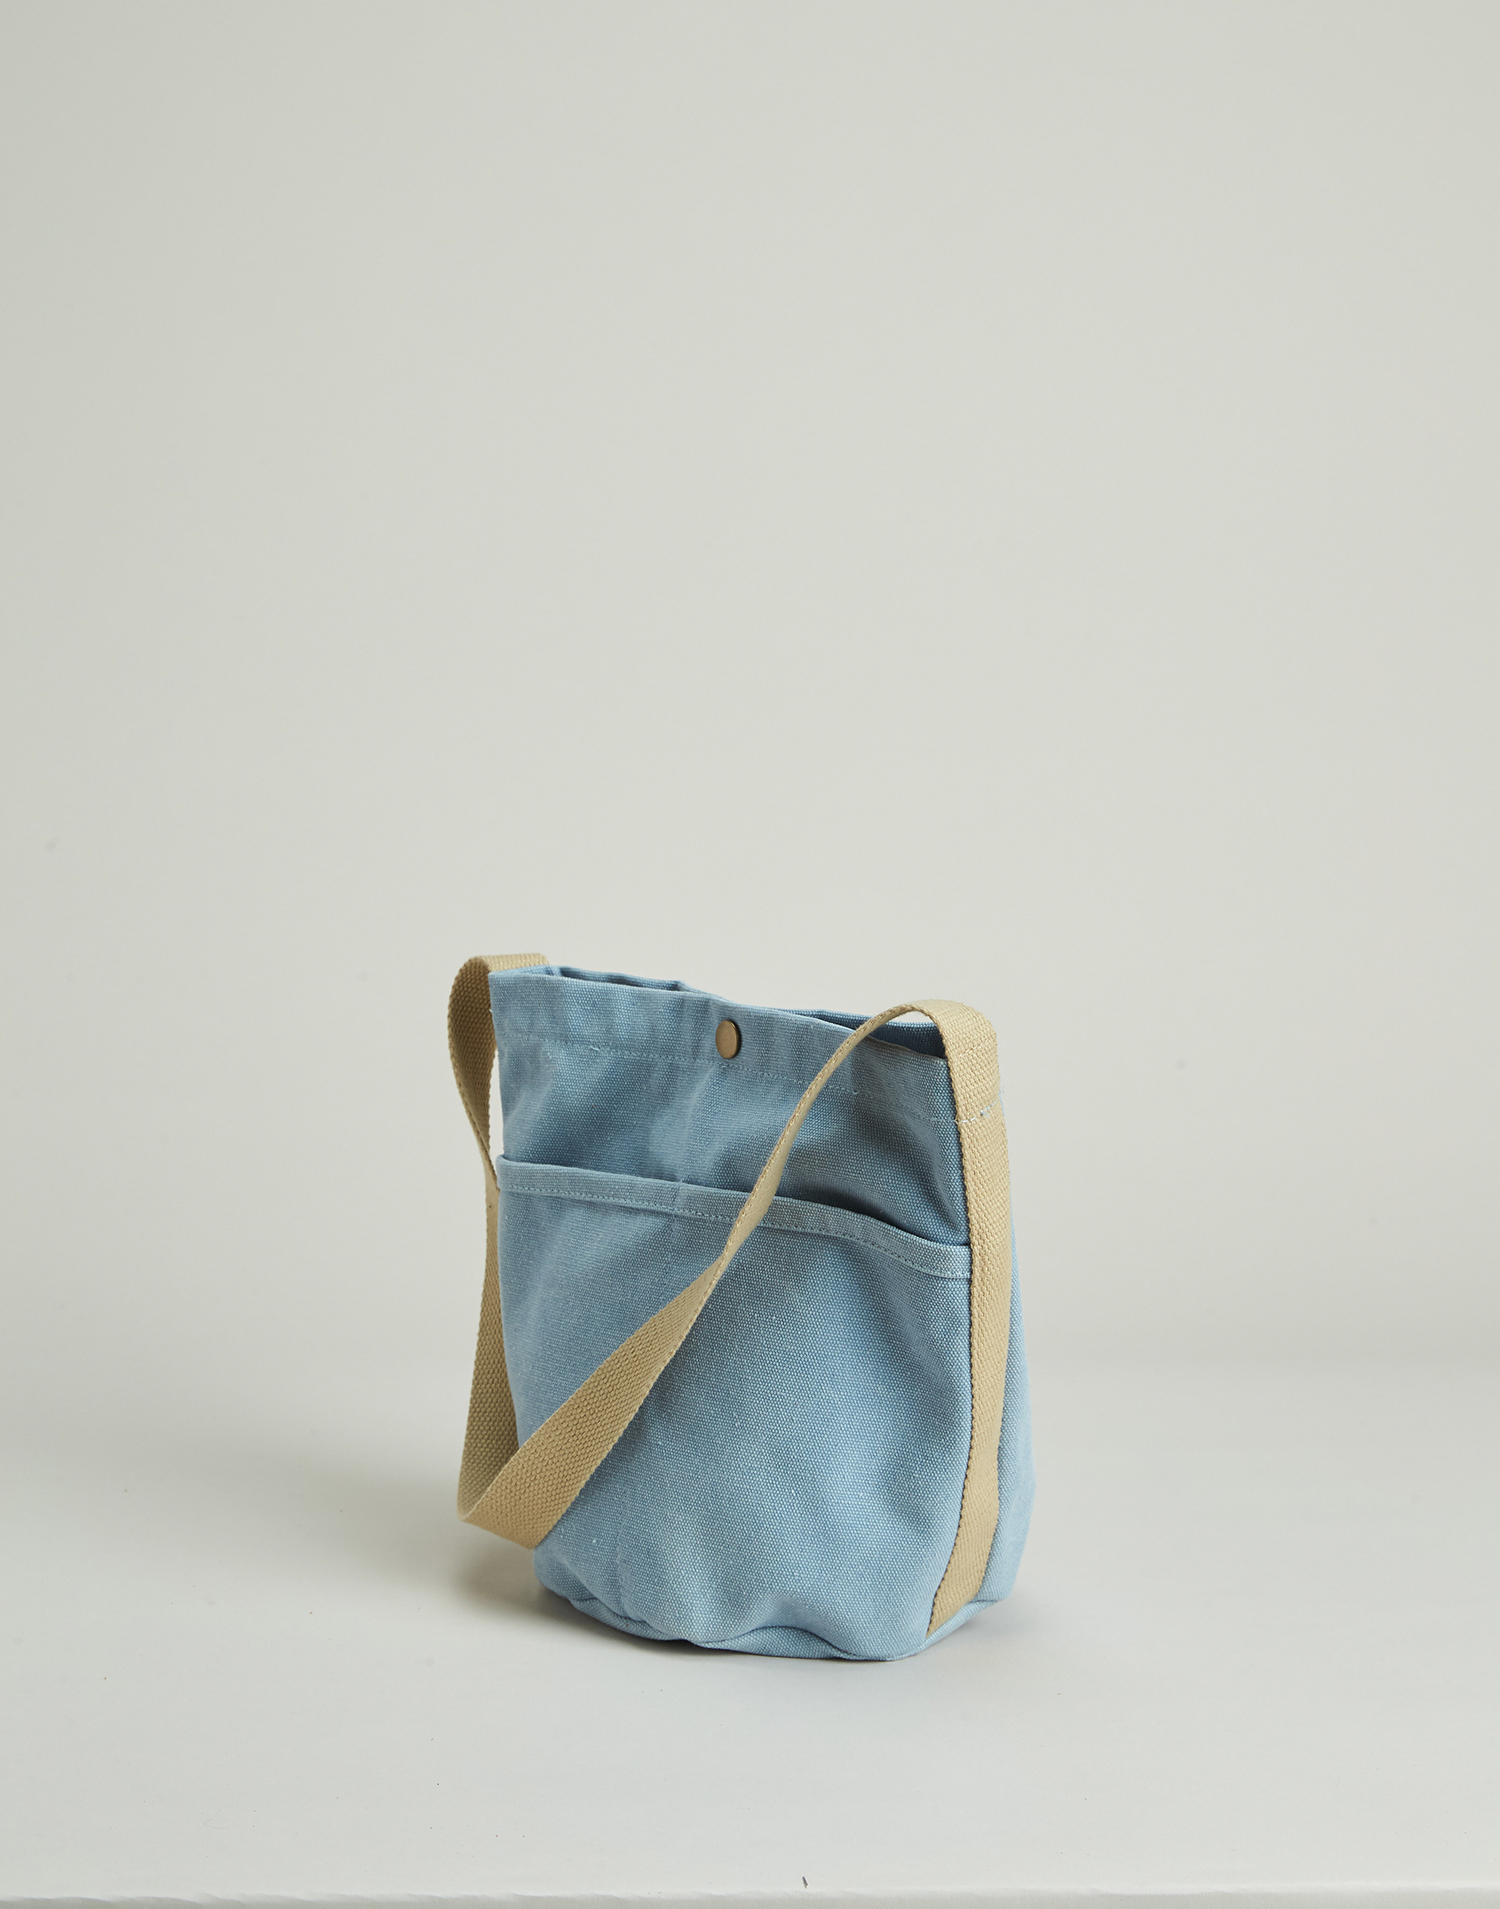 Cylindrical canvas bag